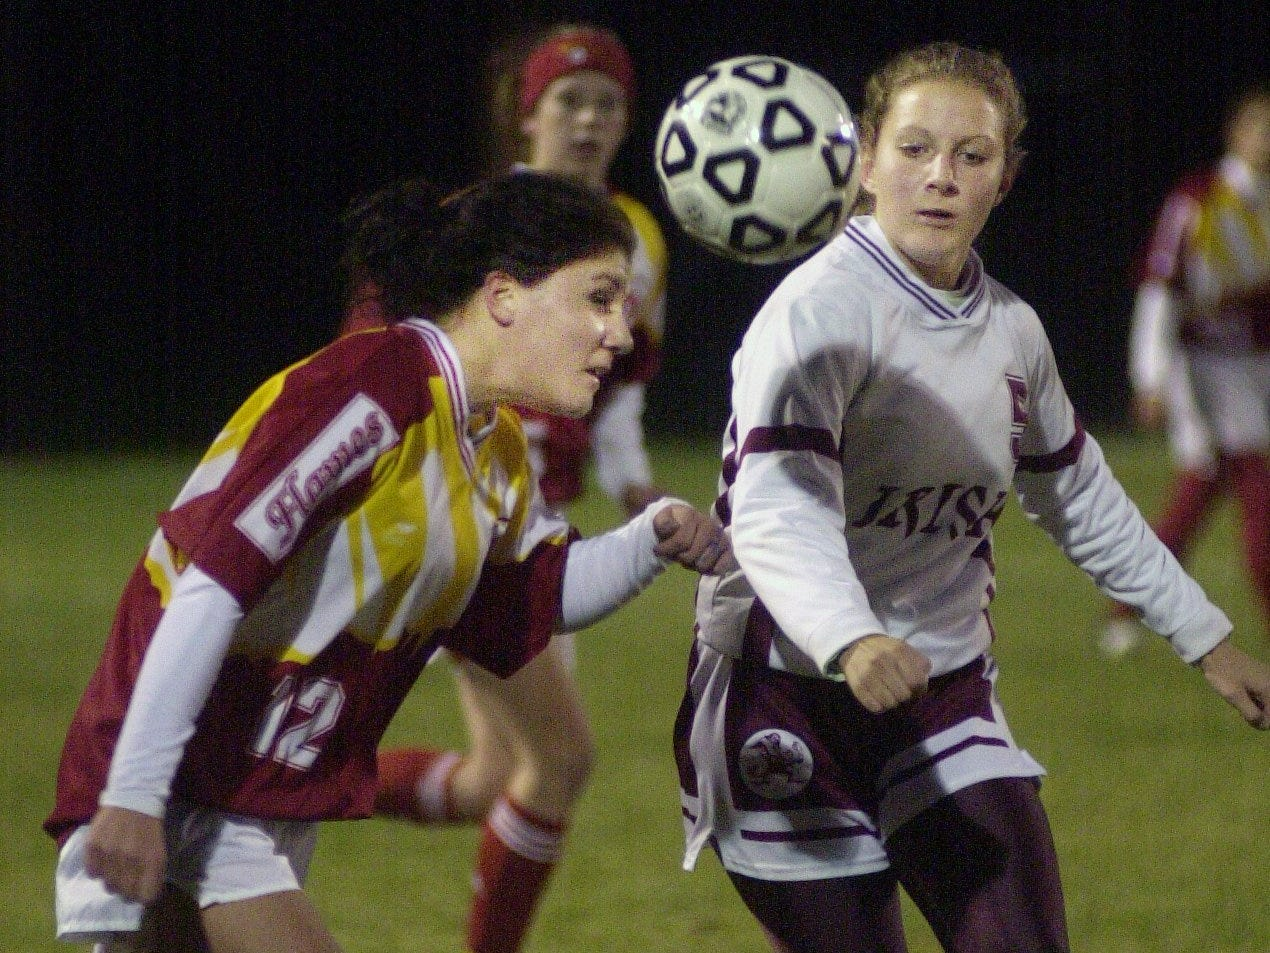 Kelly Roessler of Williamsville East, left, battles with Karen Achtyl of Aquinas during a state playoff game on Nov. 9, 2001.